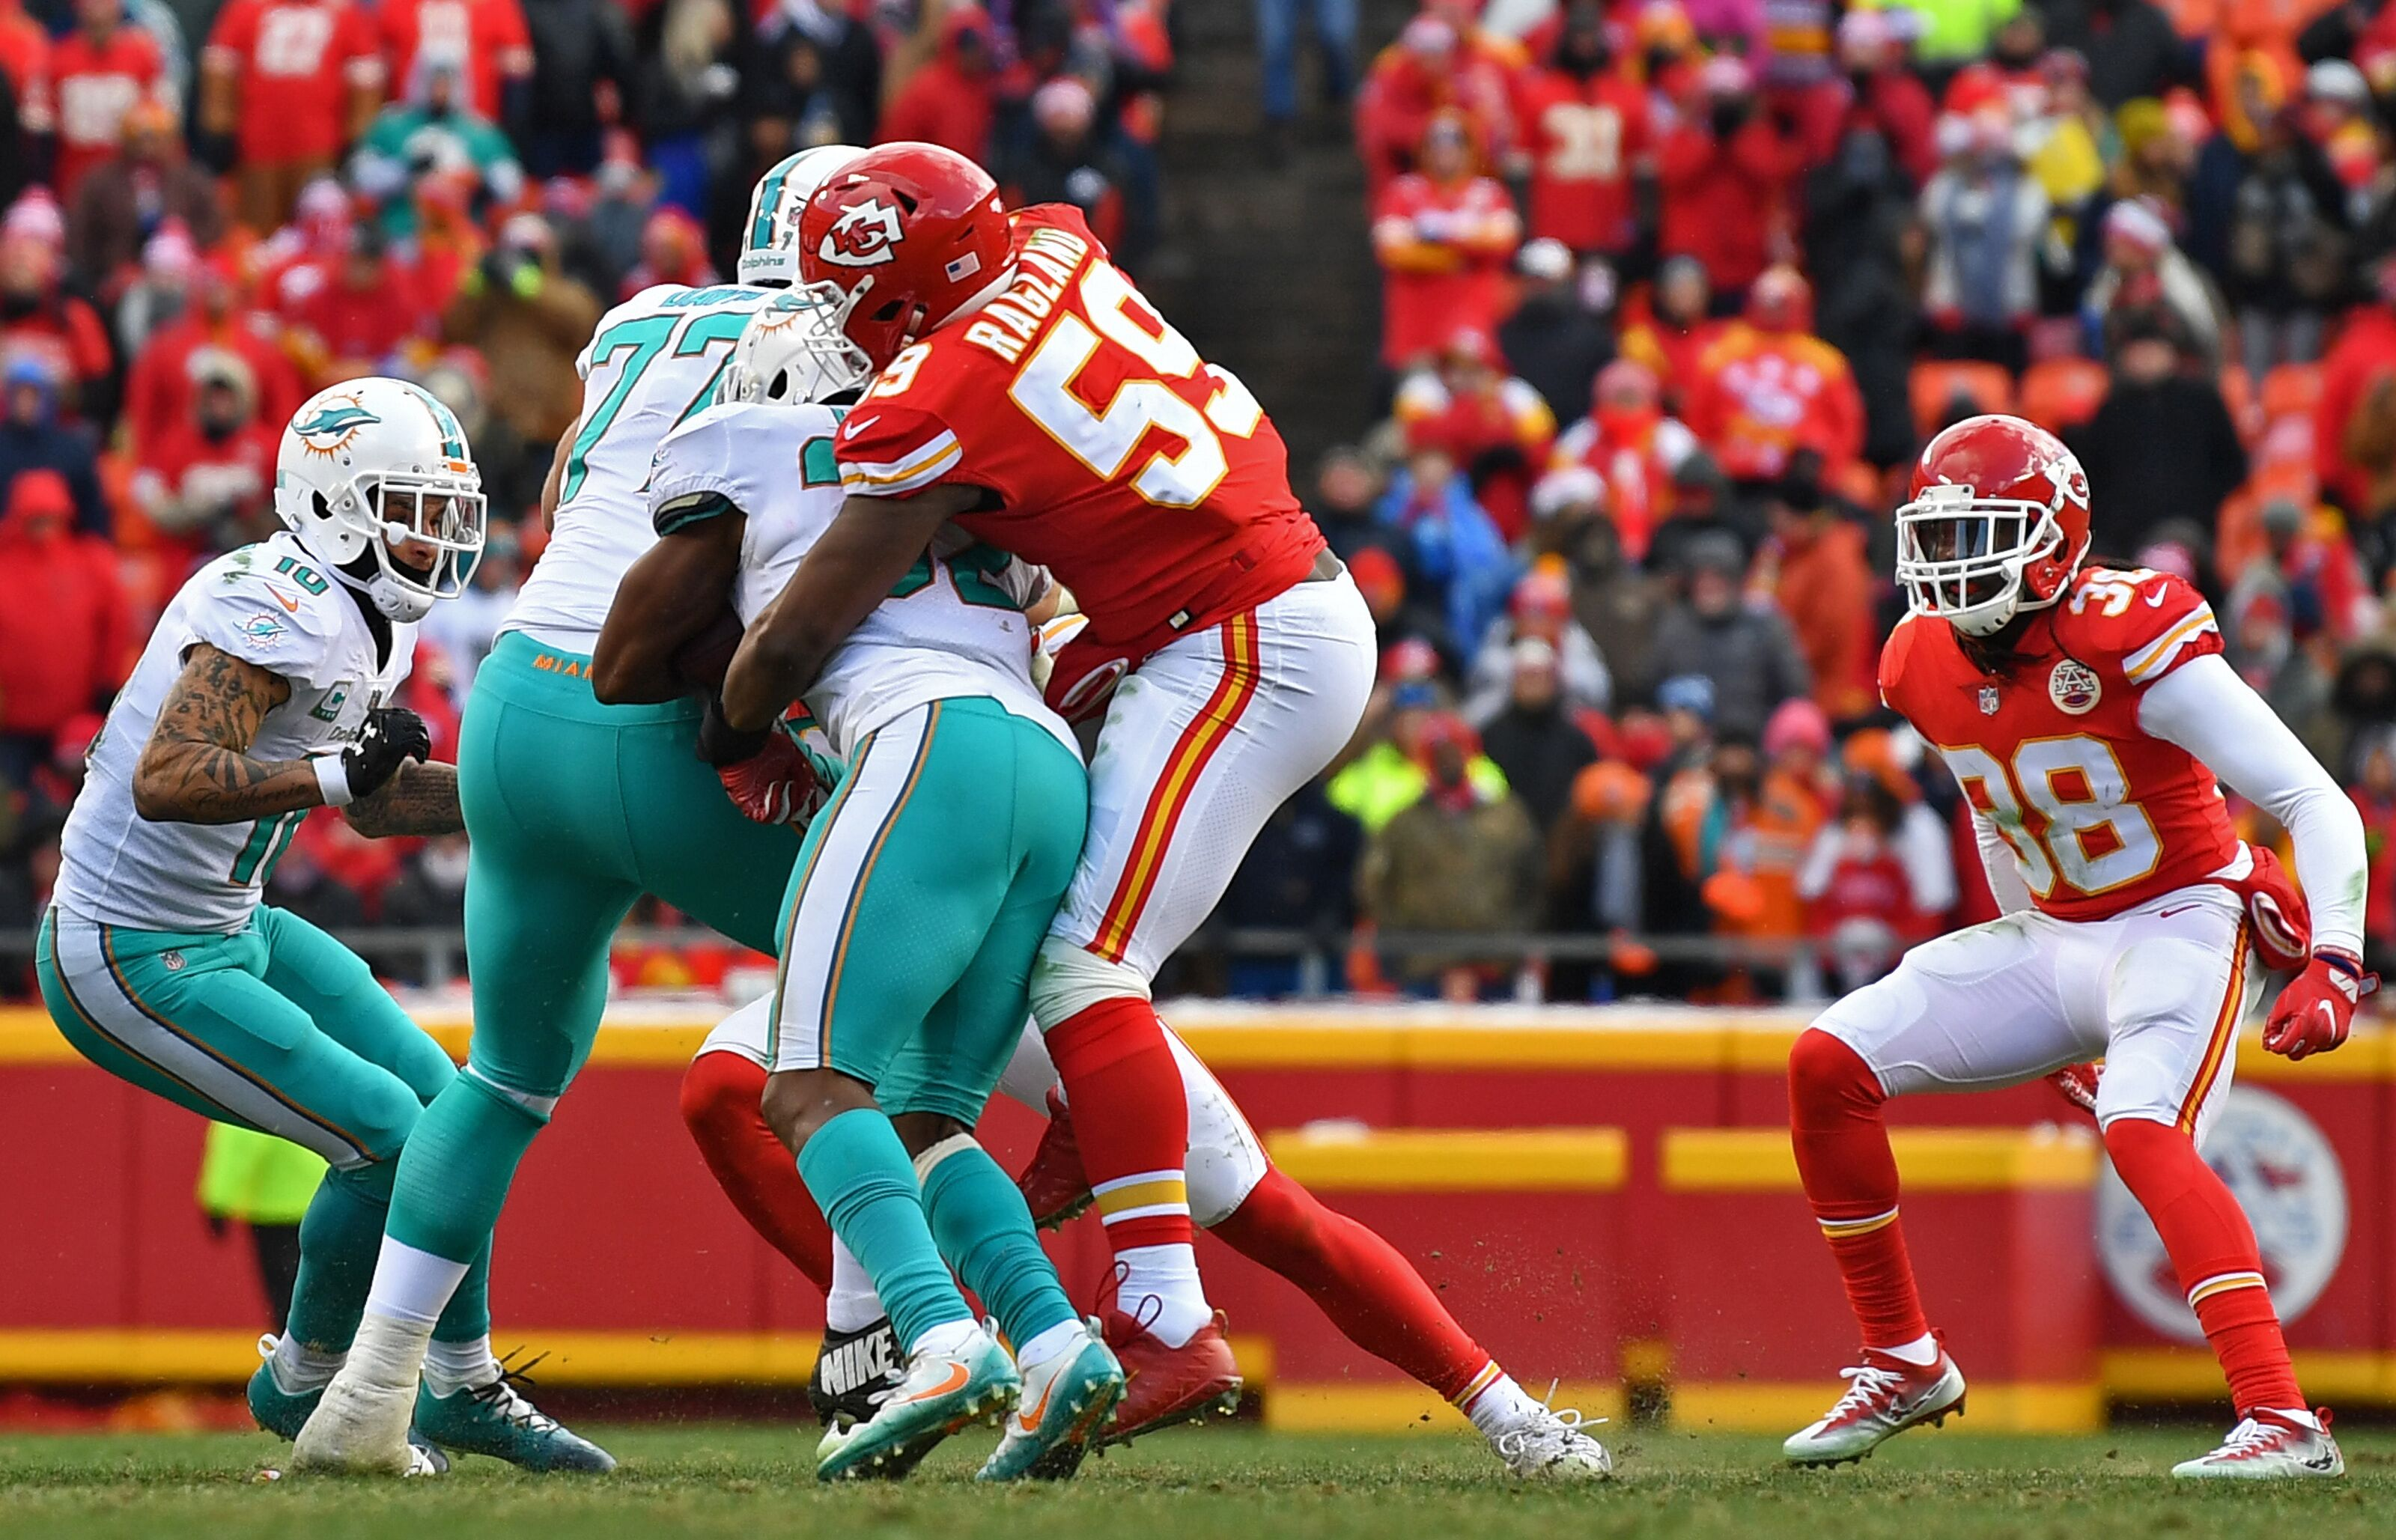 899043776-miami-dolphins-v-kansas-city-chiefs.jpg